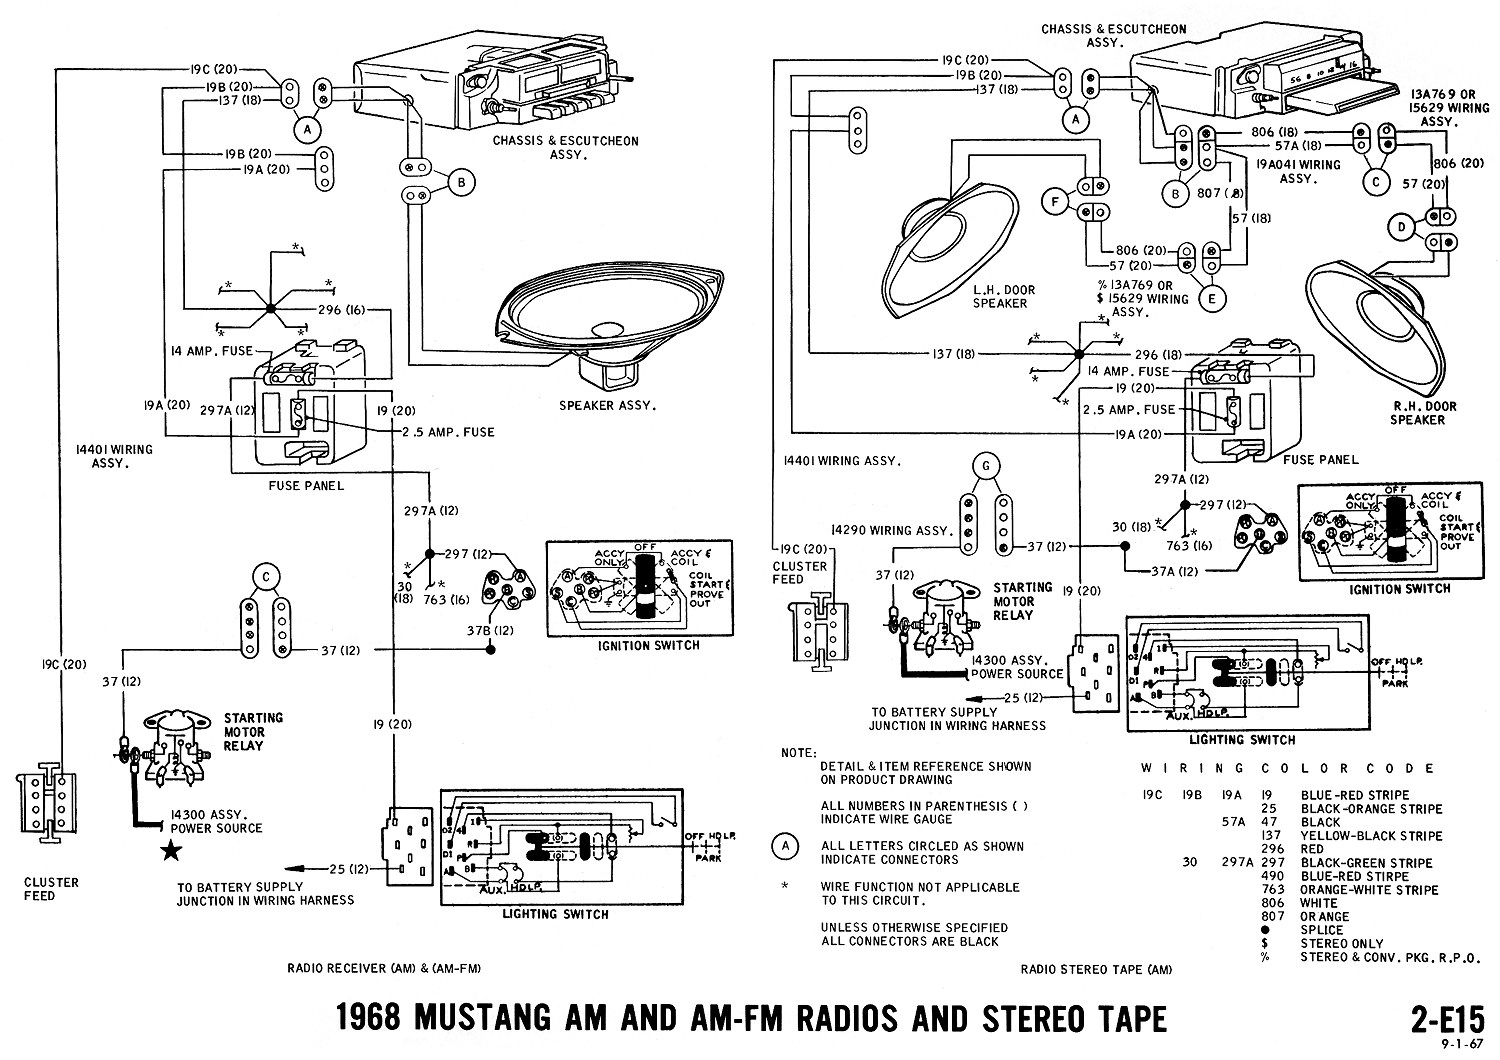 Showthread likewise 1968 Mustang Wiring Diagrams besides 1g615 72 Monte Carlo Switches Ac I Thinking Blower Motor besides Wiring Diagram Wires Under Dash 144872 in addition BUICK Car Radio Wiring Connector. on 2004 ford factory radio wire colors